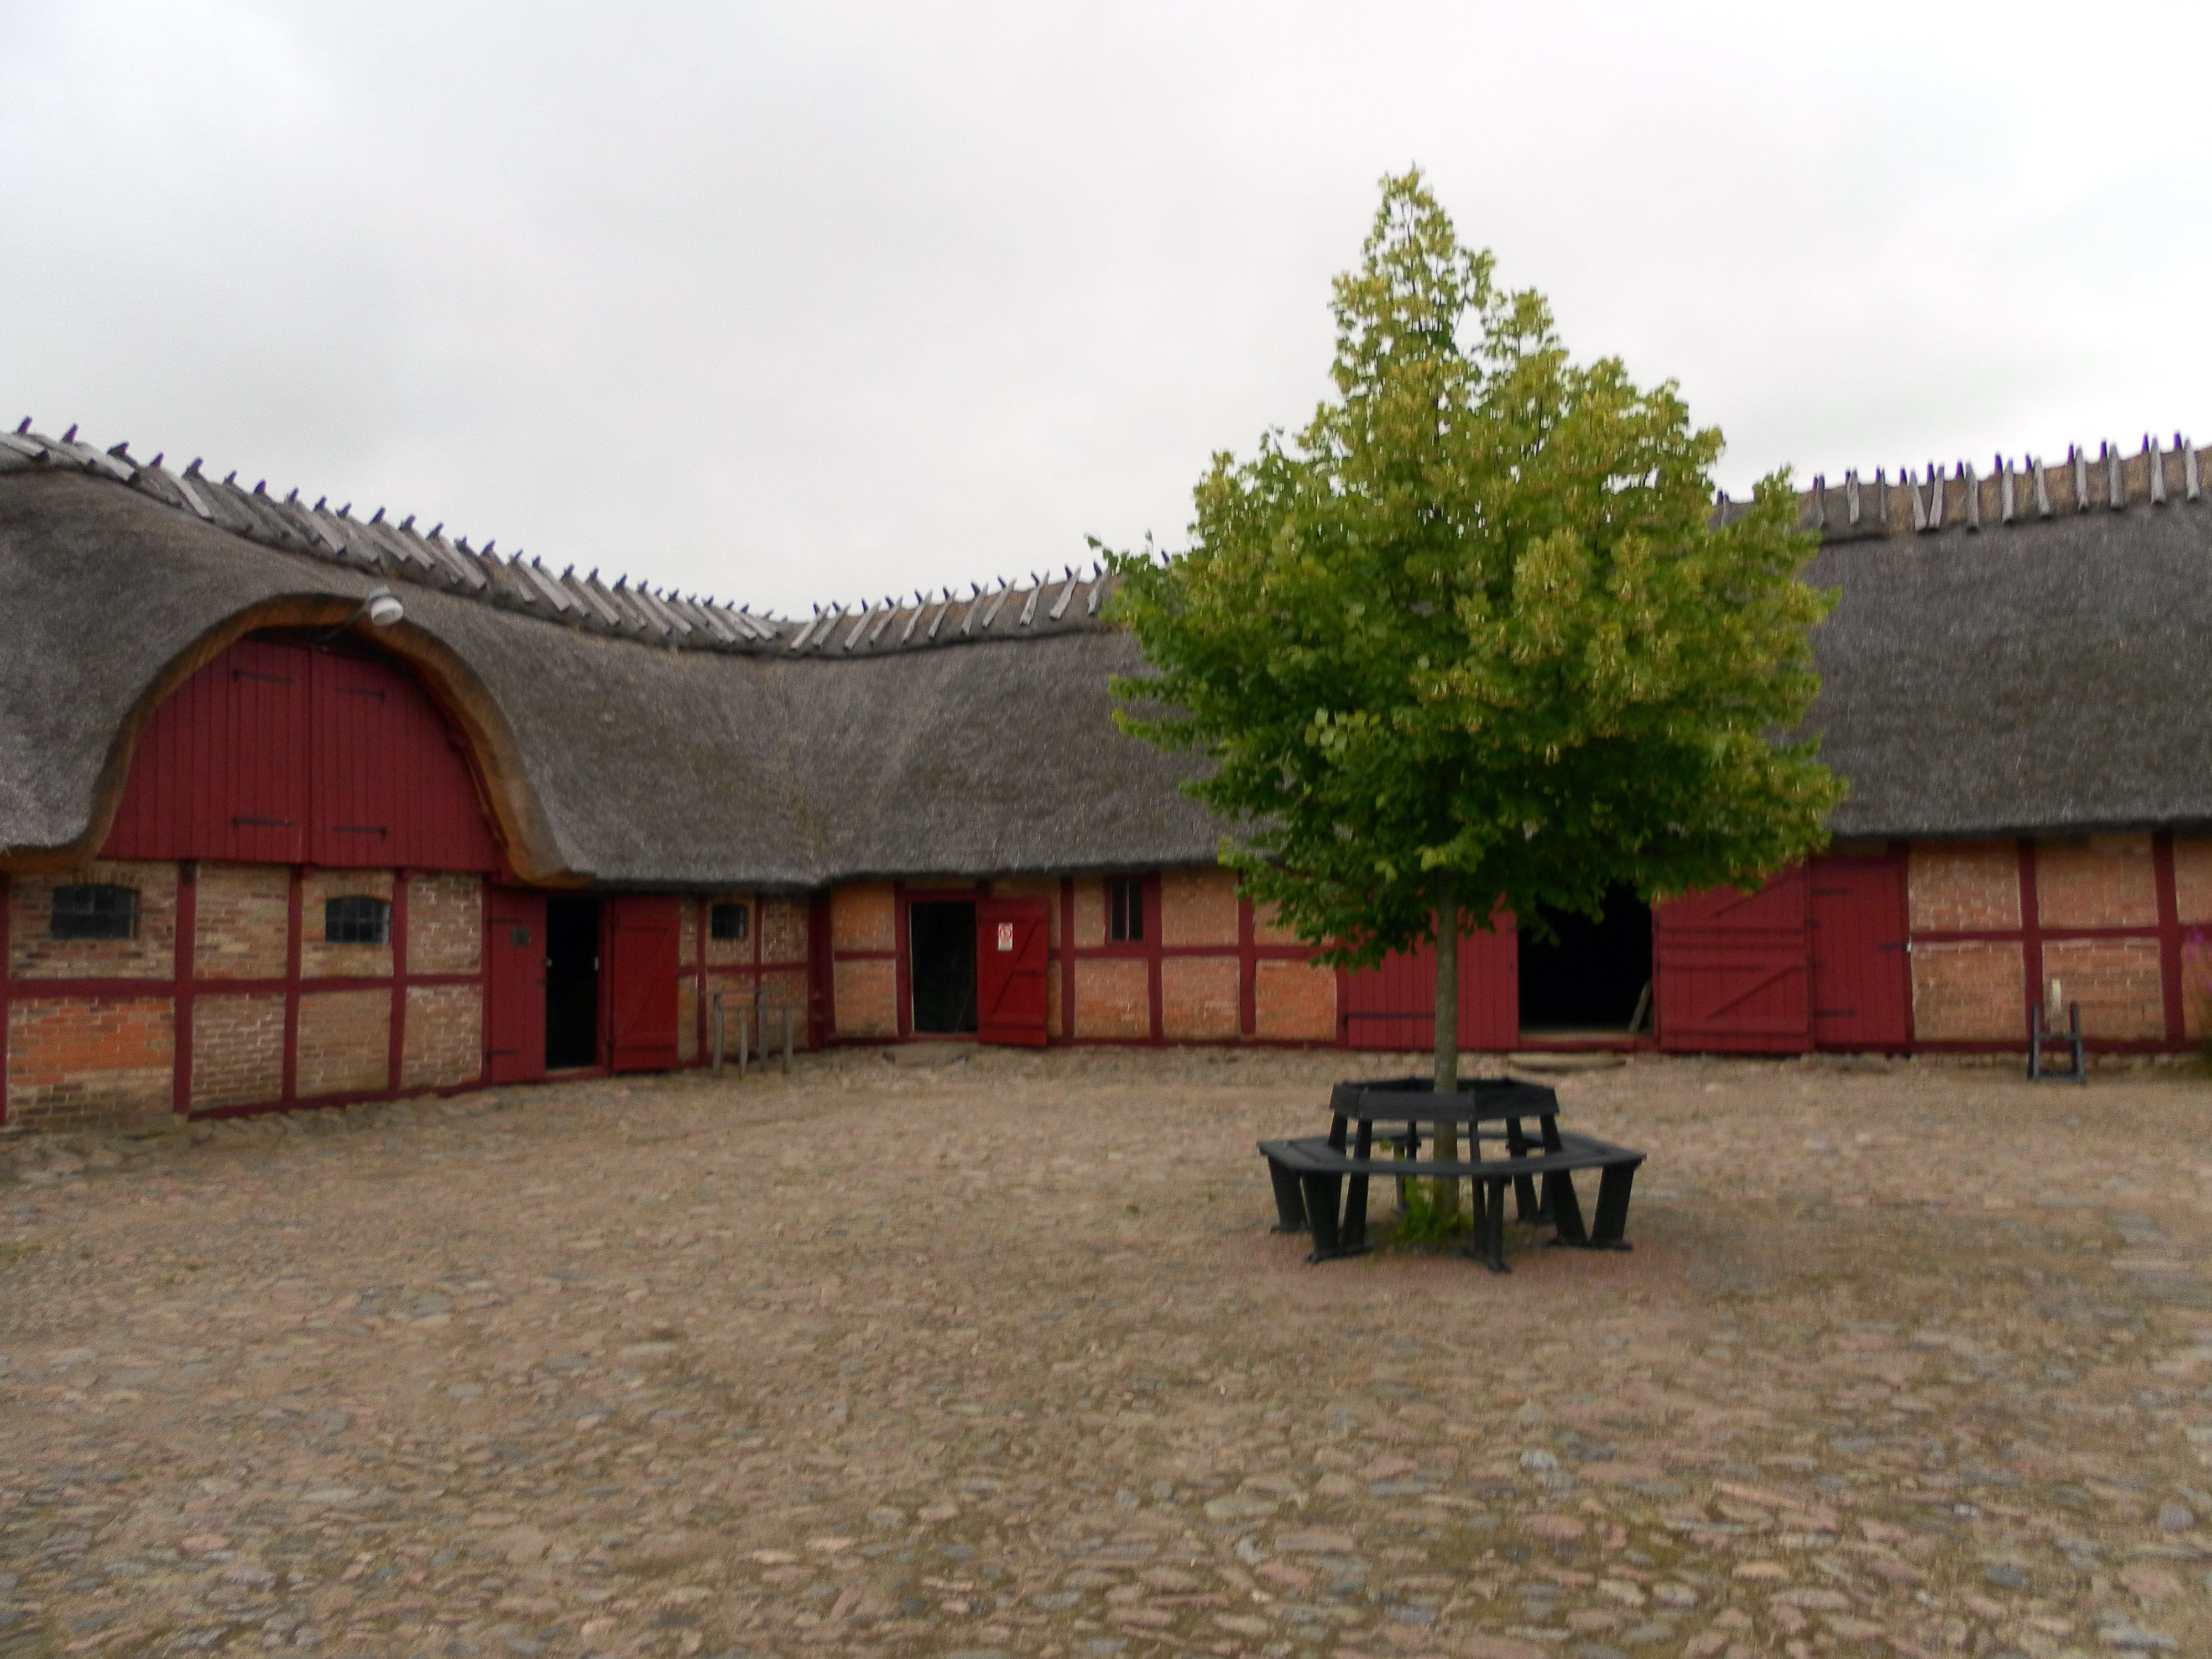 Asmundtorp's local heritage museum